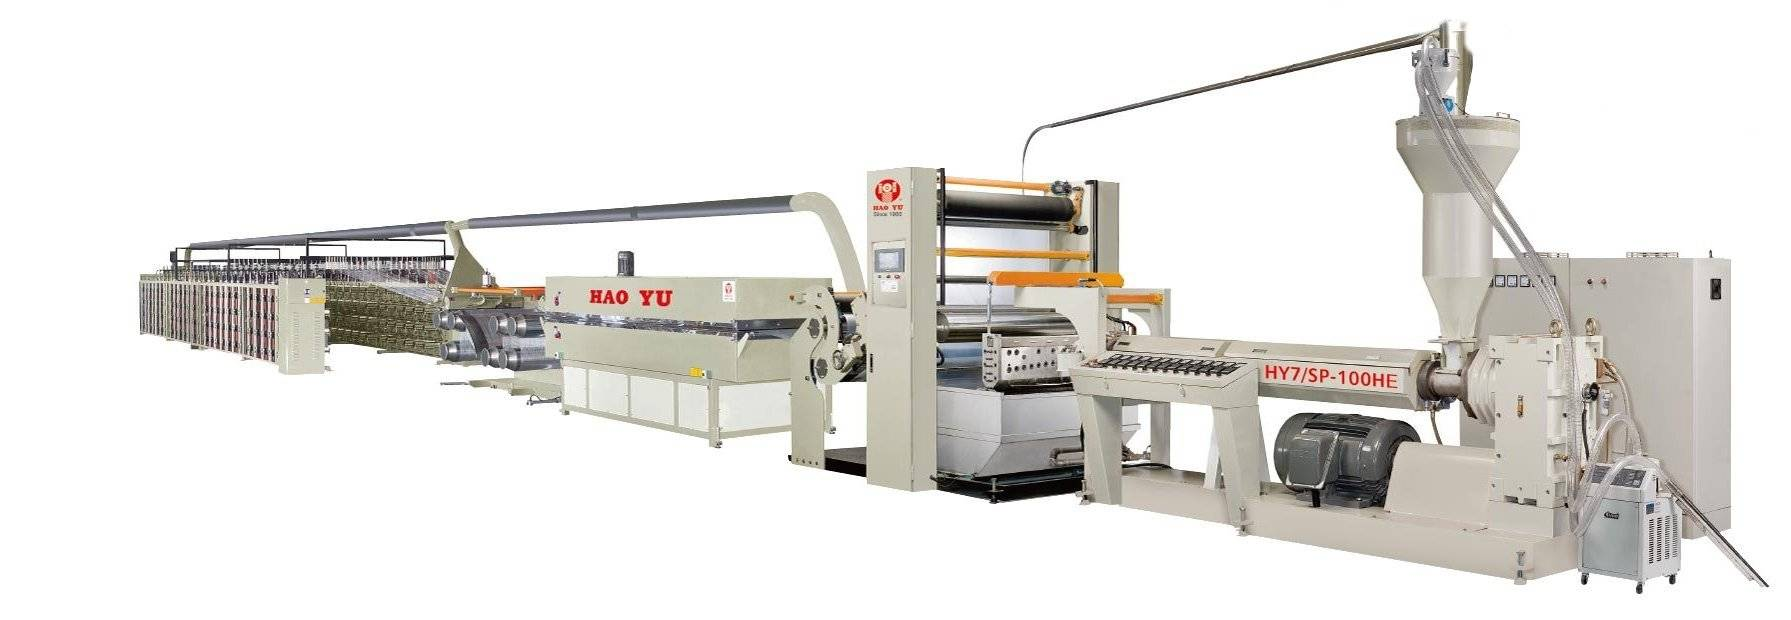 PP/HDPE High Speed Flat Yarn Extrusion Line (HY7/SP-80HE,90HE,100HE,110HE,120HE)